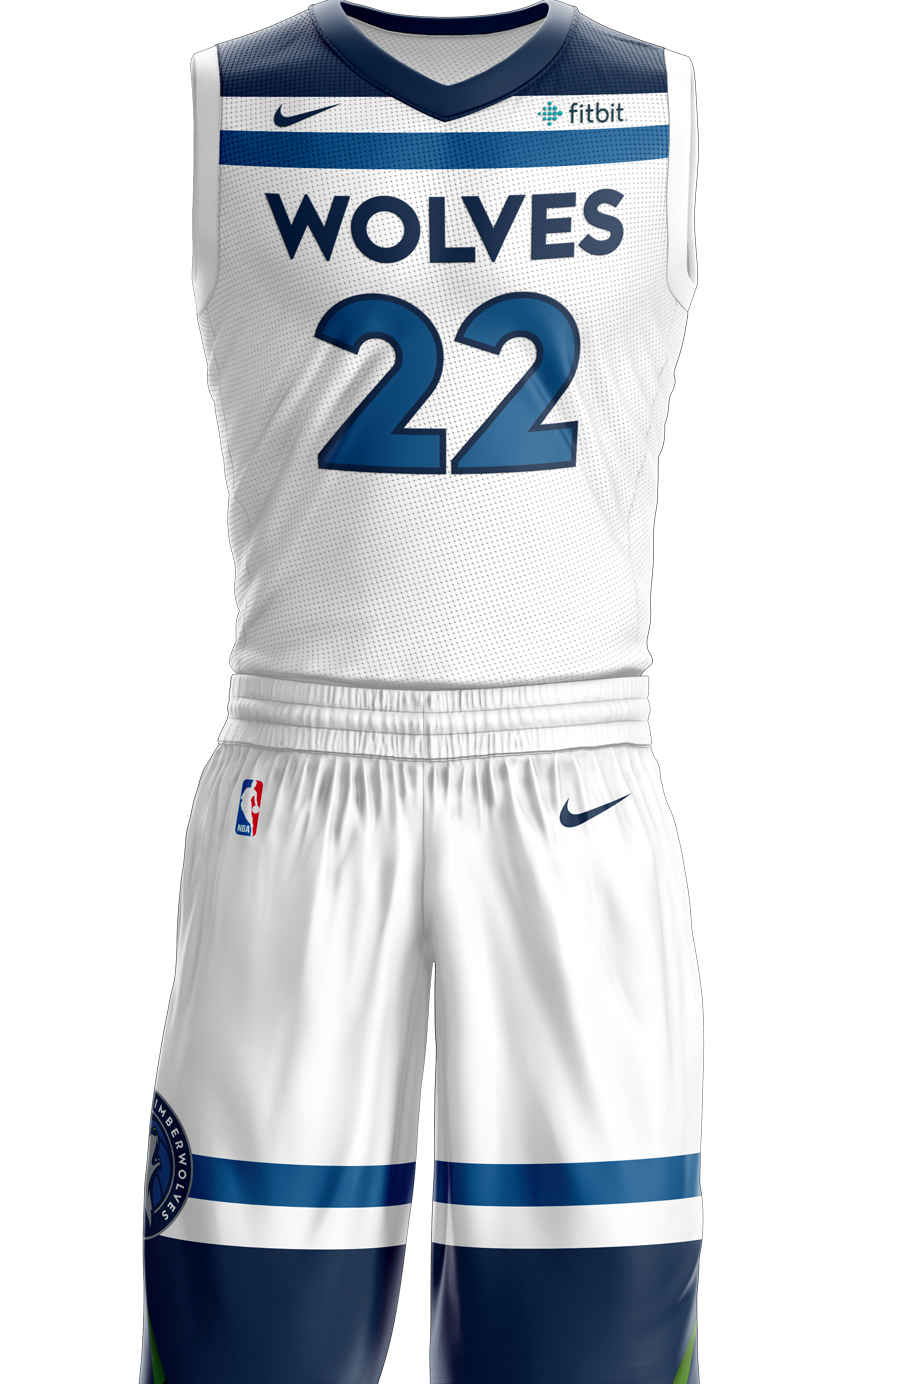 New Era New Threads An In Depth Look At The New Wolves